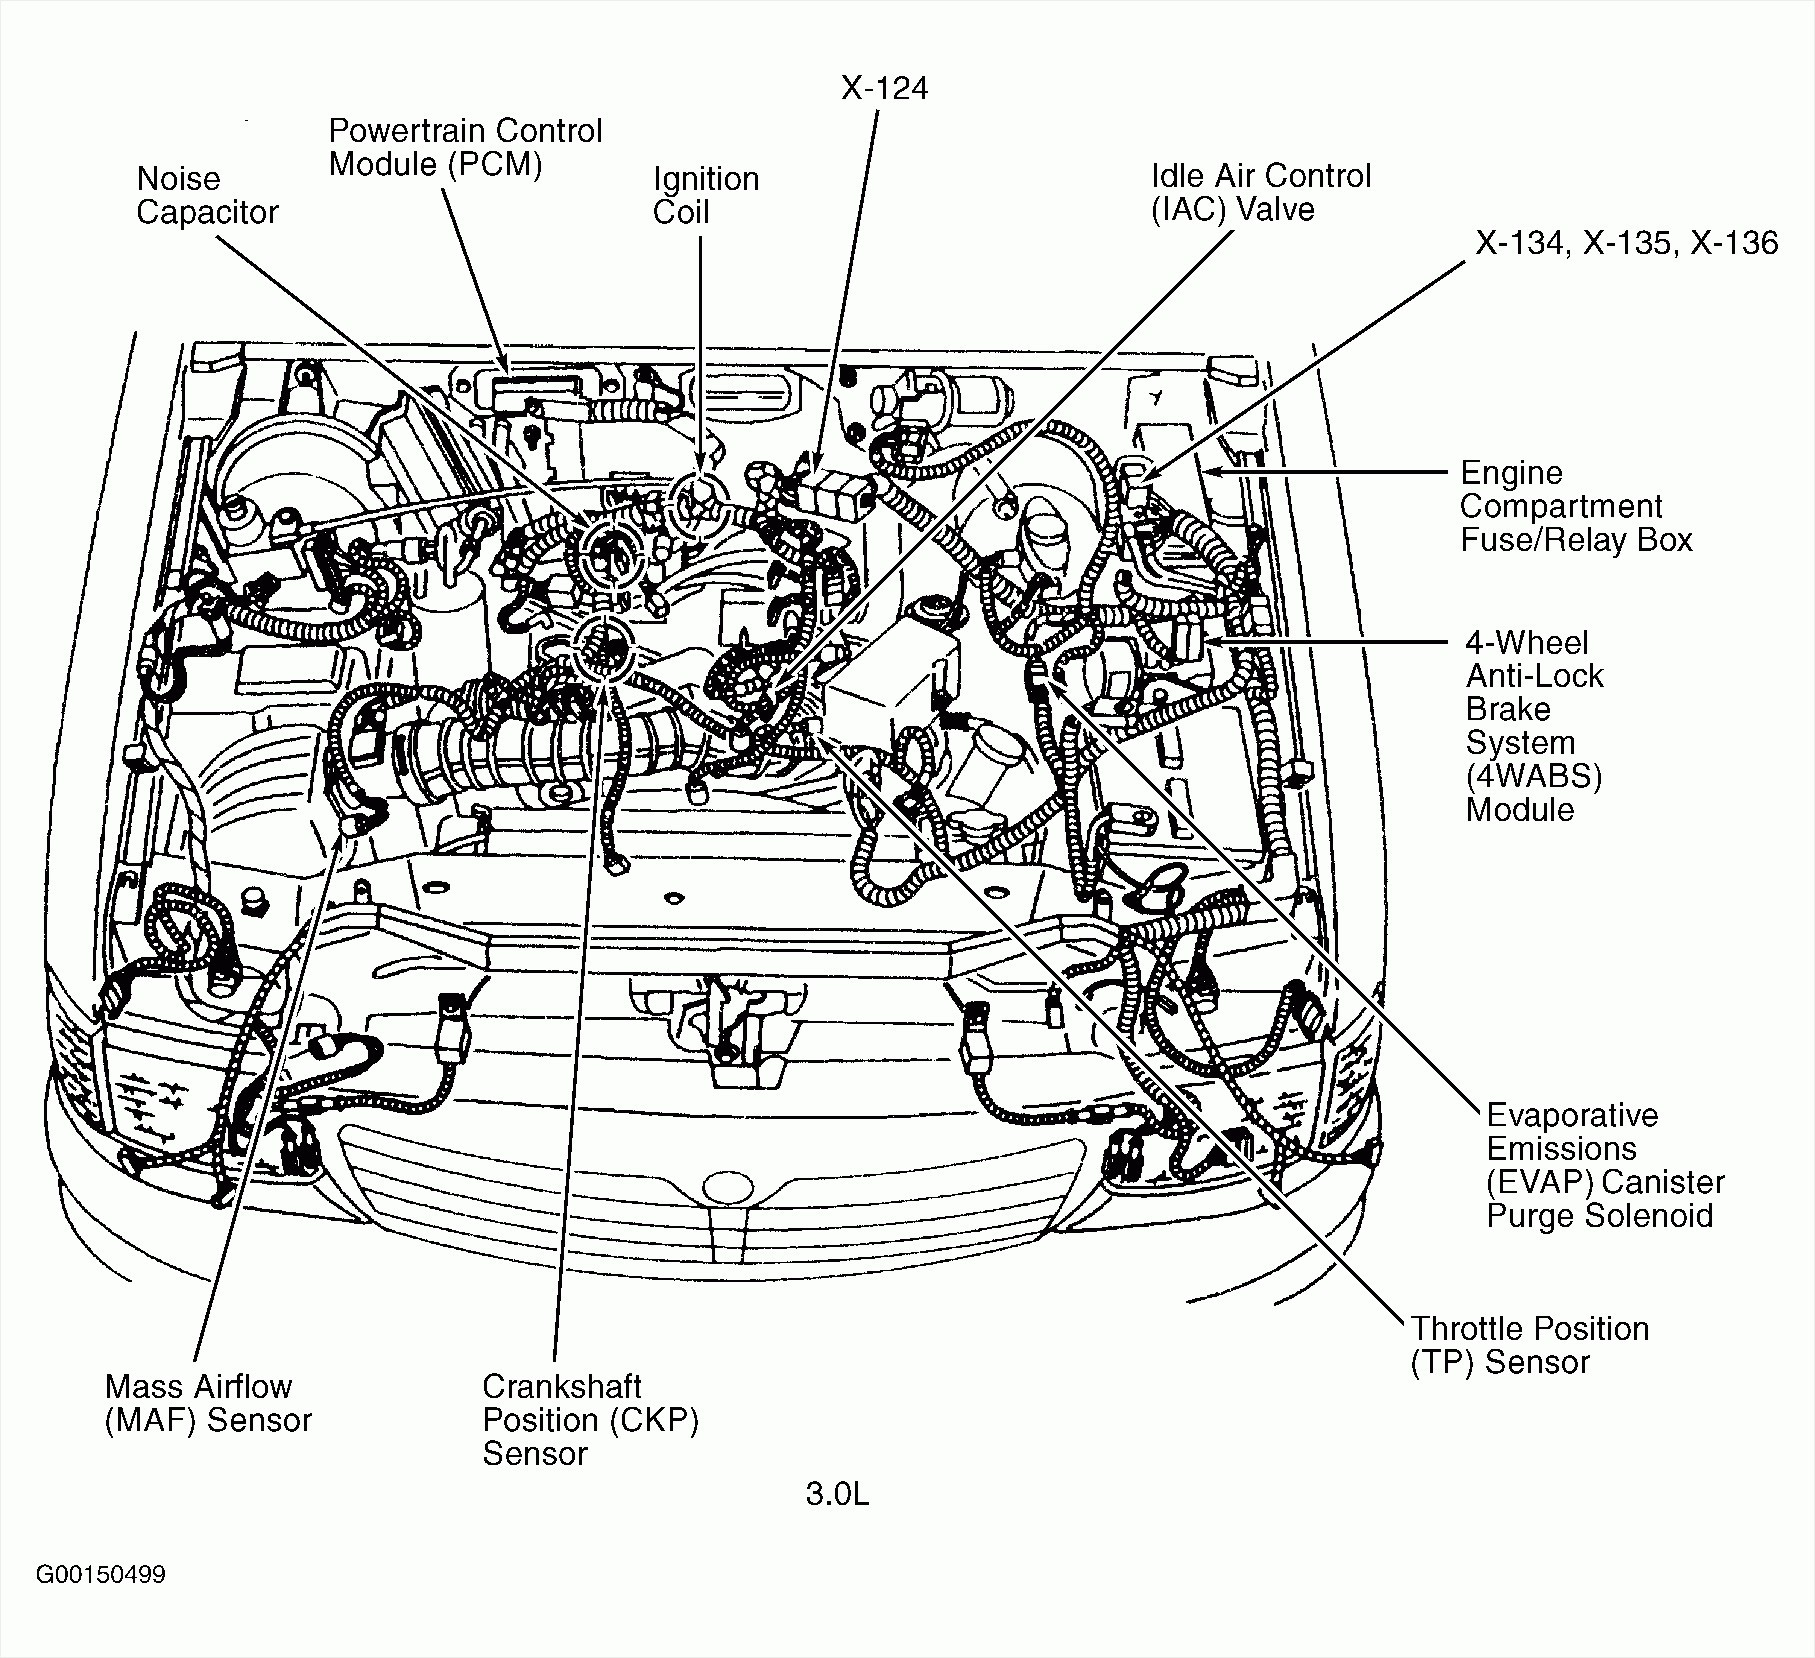 1999 mazda millenia engine diagram wiring diagram function 99 Miata 1.8 Engine